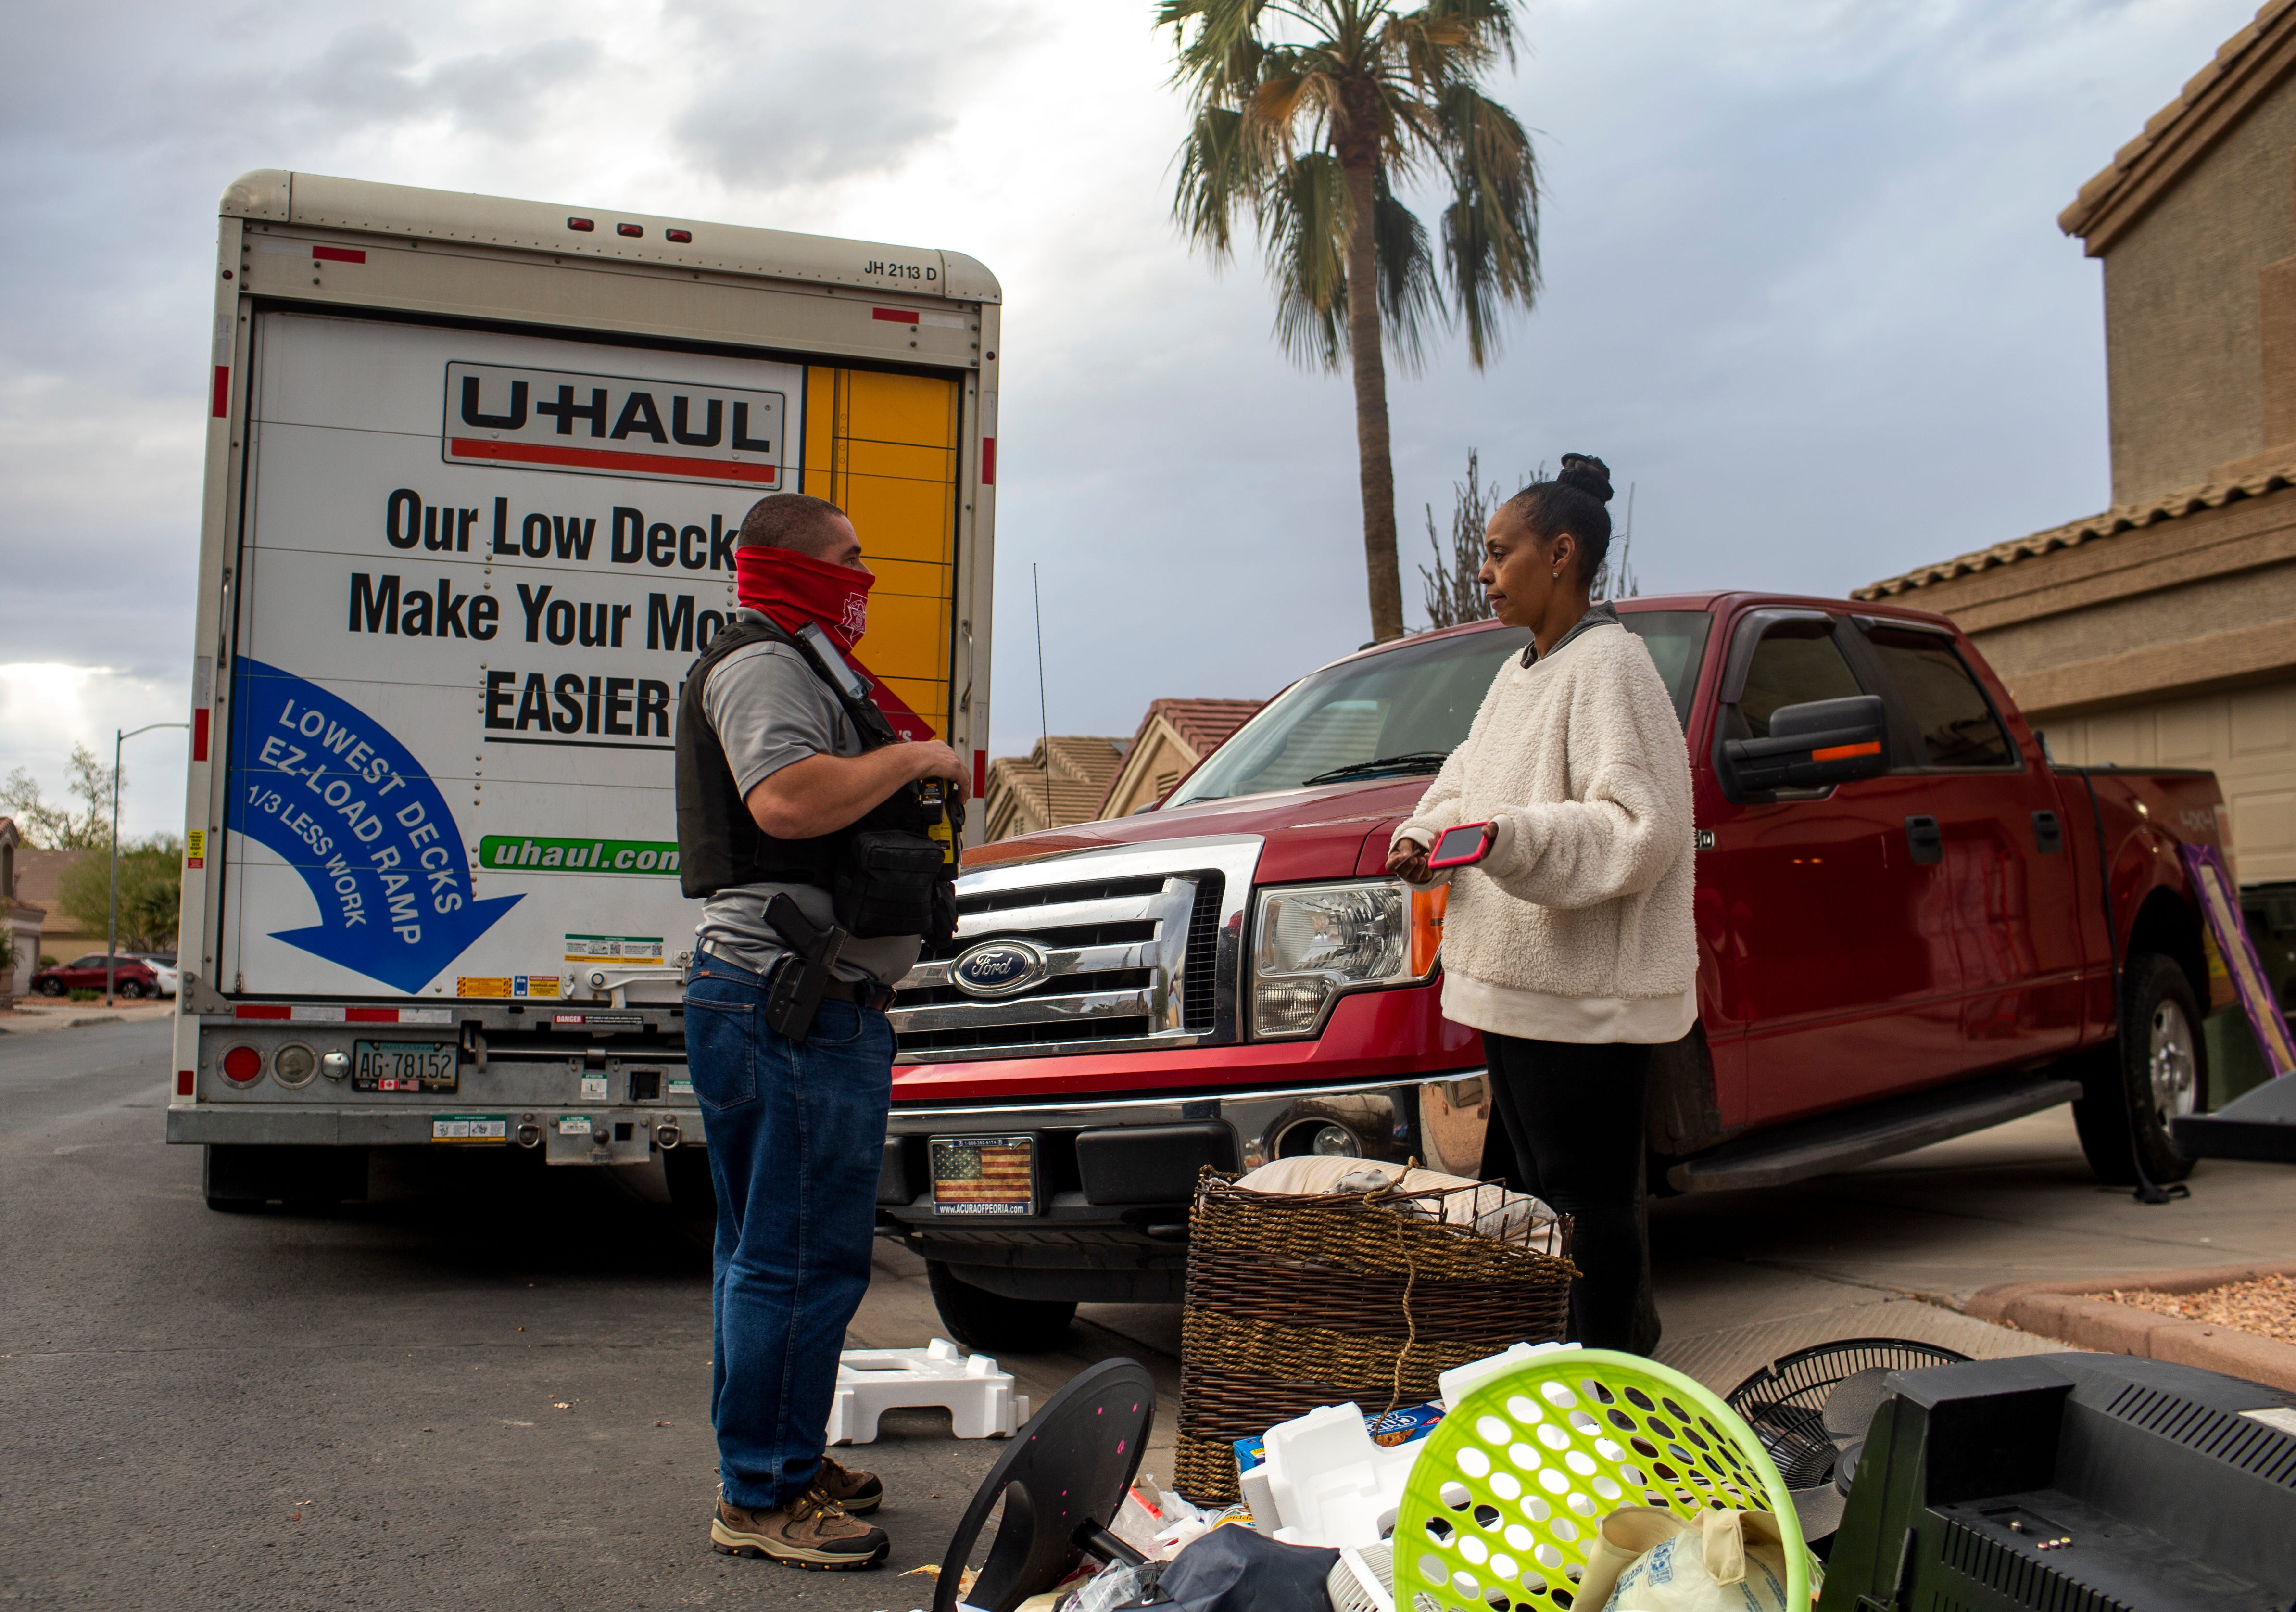 A constable who did not wish to be identified (left) asks Sylvia Haysbert-Stevens how much longer she will need to move her belongings out of a home she had been evicted from in El Mirage on March 11, 2021. Despite a moratorium preventing landlords from evicting tenants during the COVID-19 pandemic, a court ordered Stevens to vacate the El Mirage home she had been living in with her daughter and granddaughter.